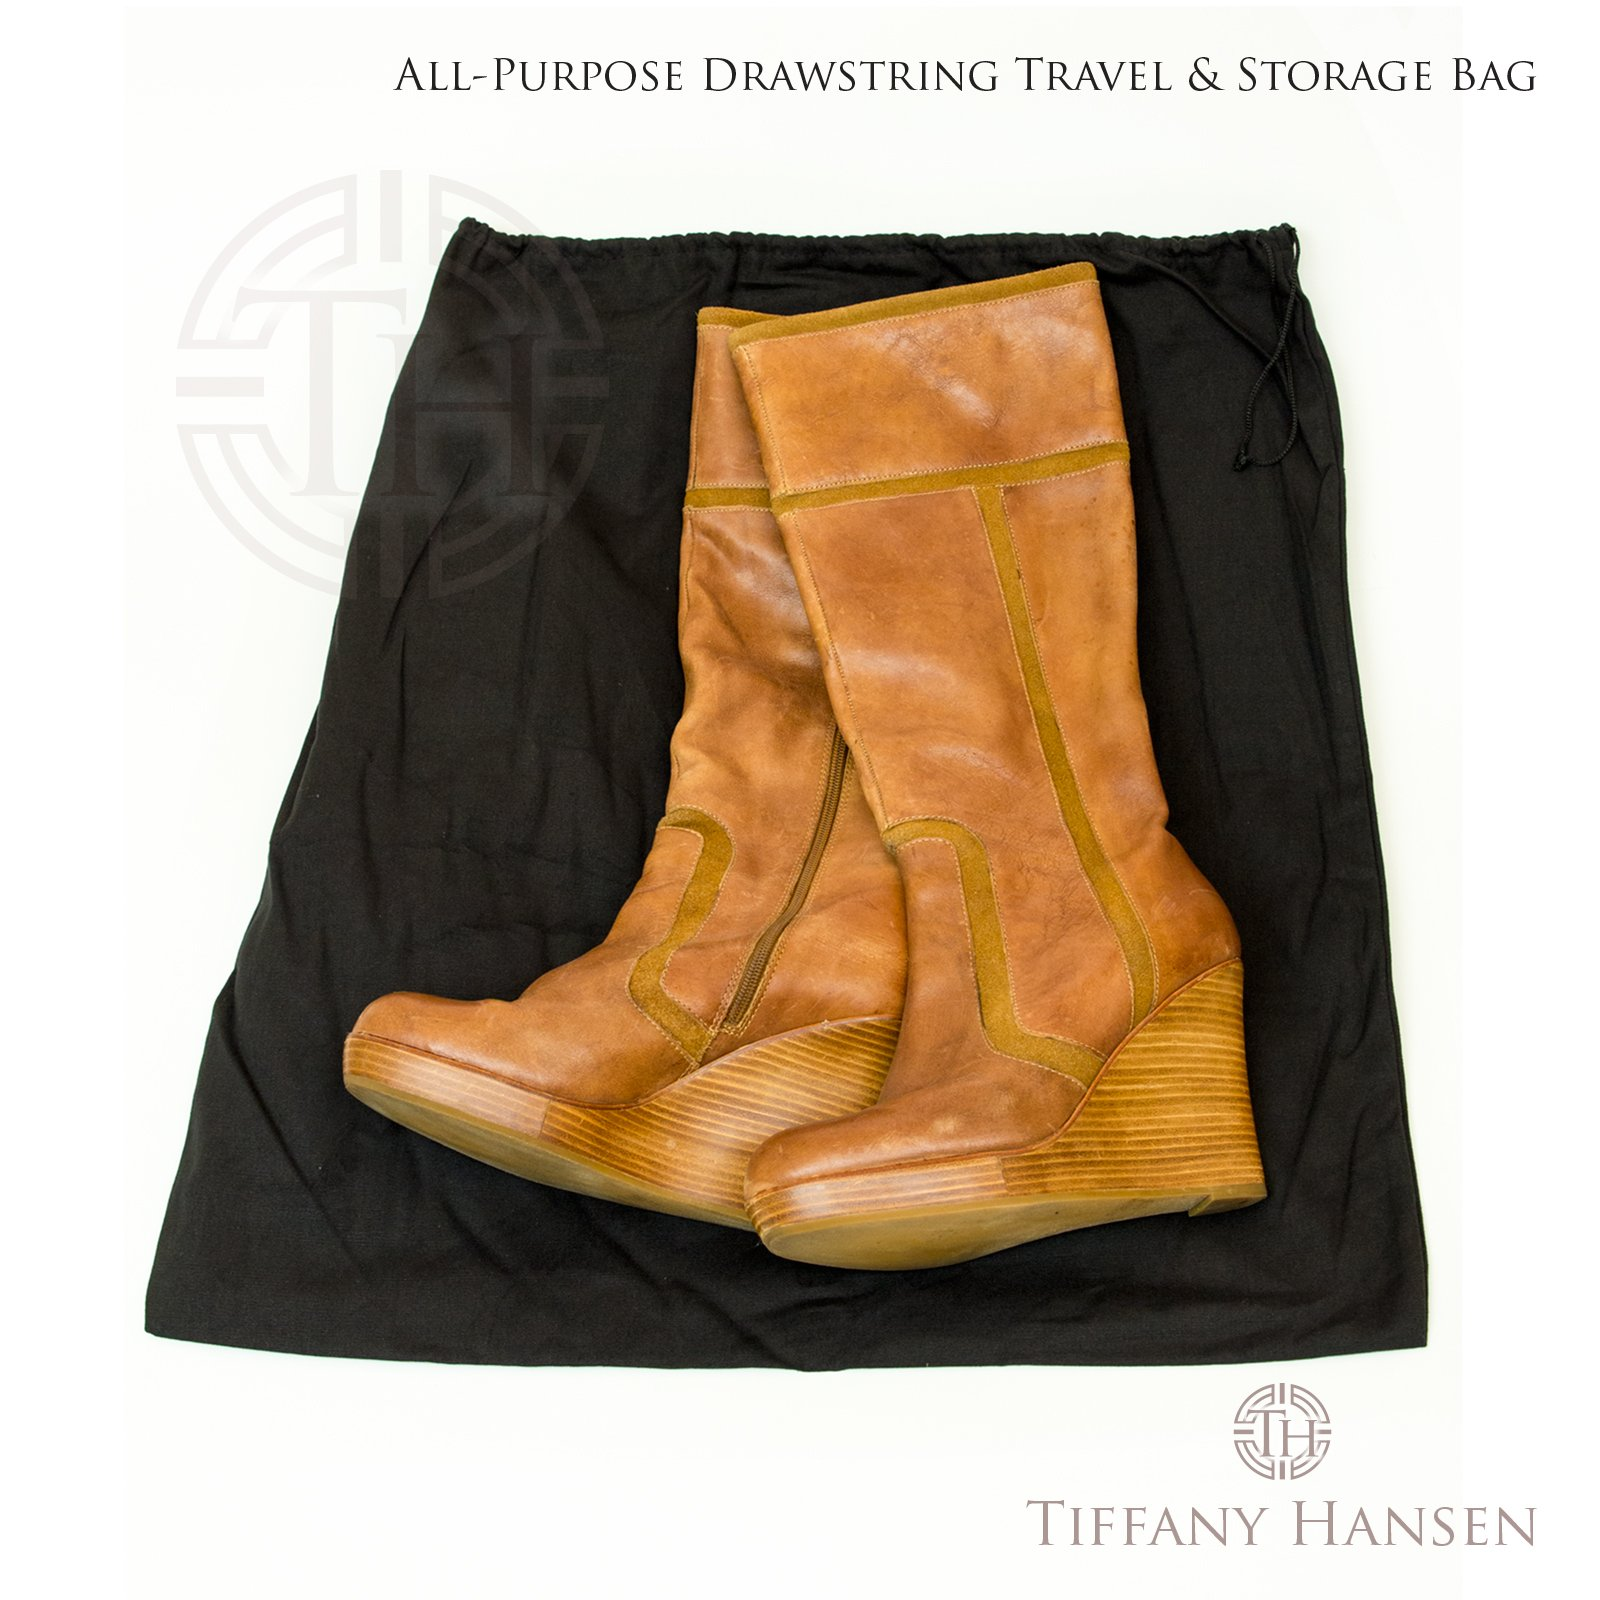 Tiffany Hansen's Cotton Large Drawstring Shoe & Purse Travel Storage Bag (12) by Tiffany Hansen Designs (Image #2)